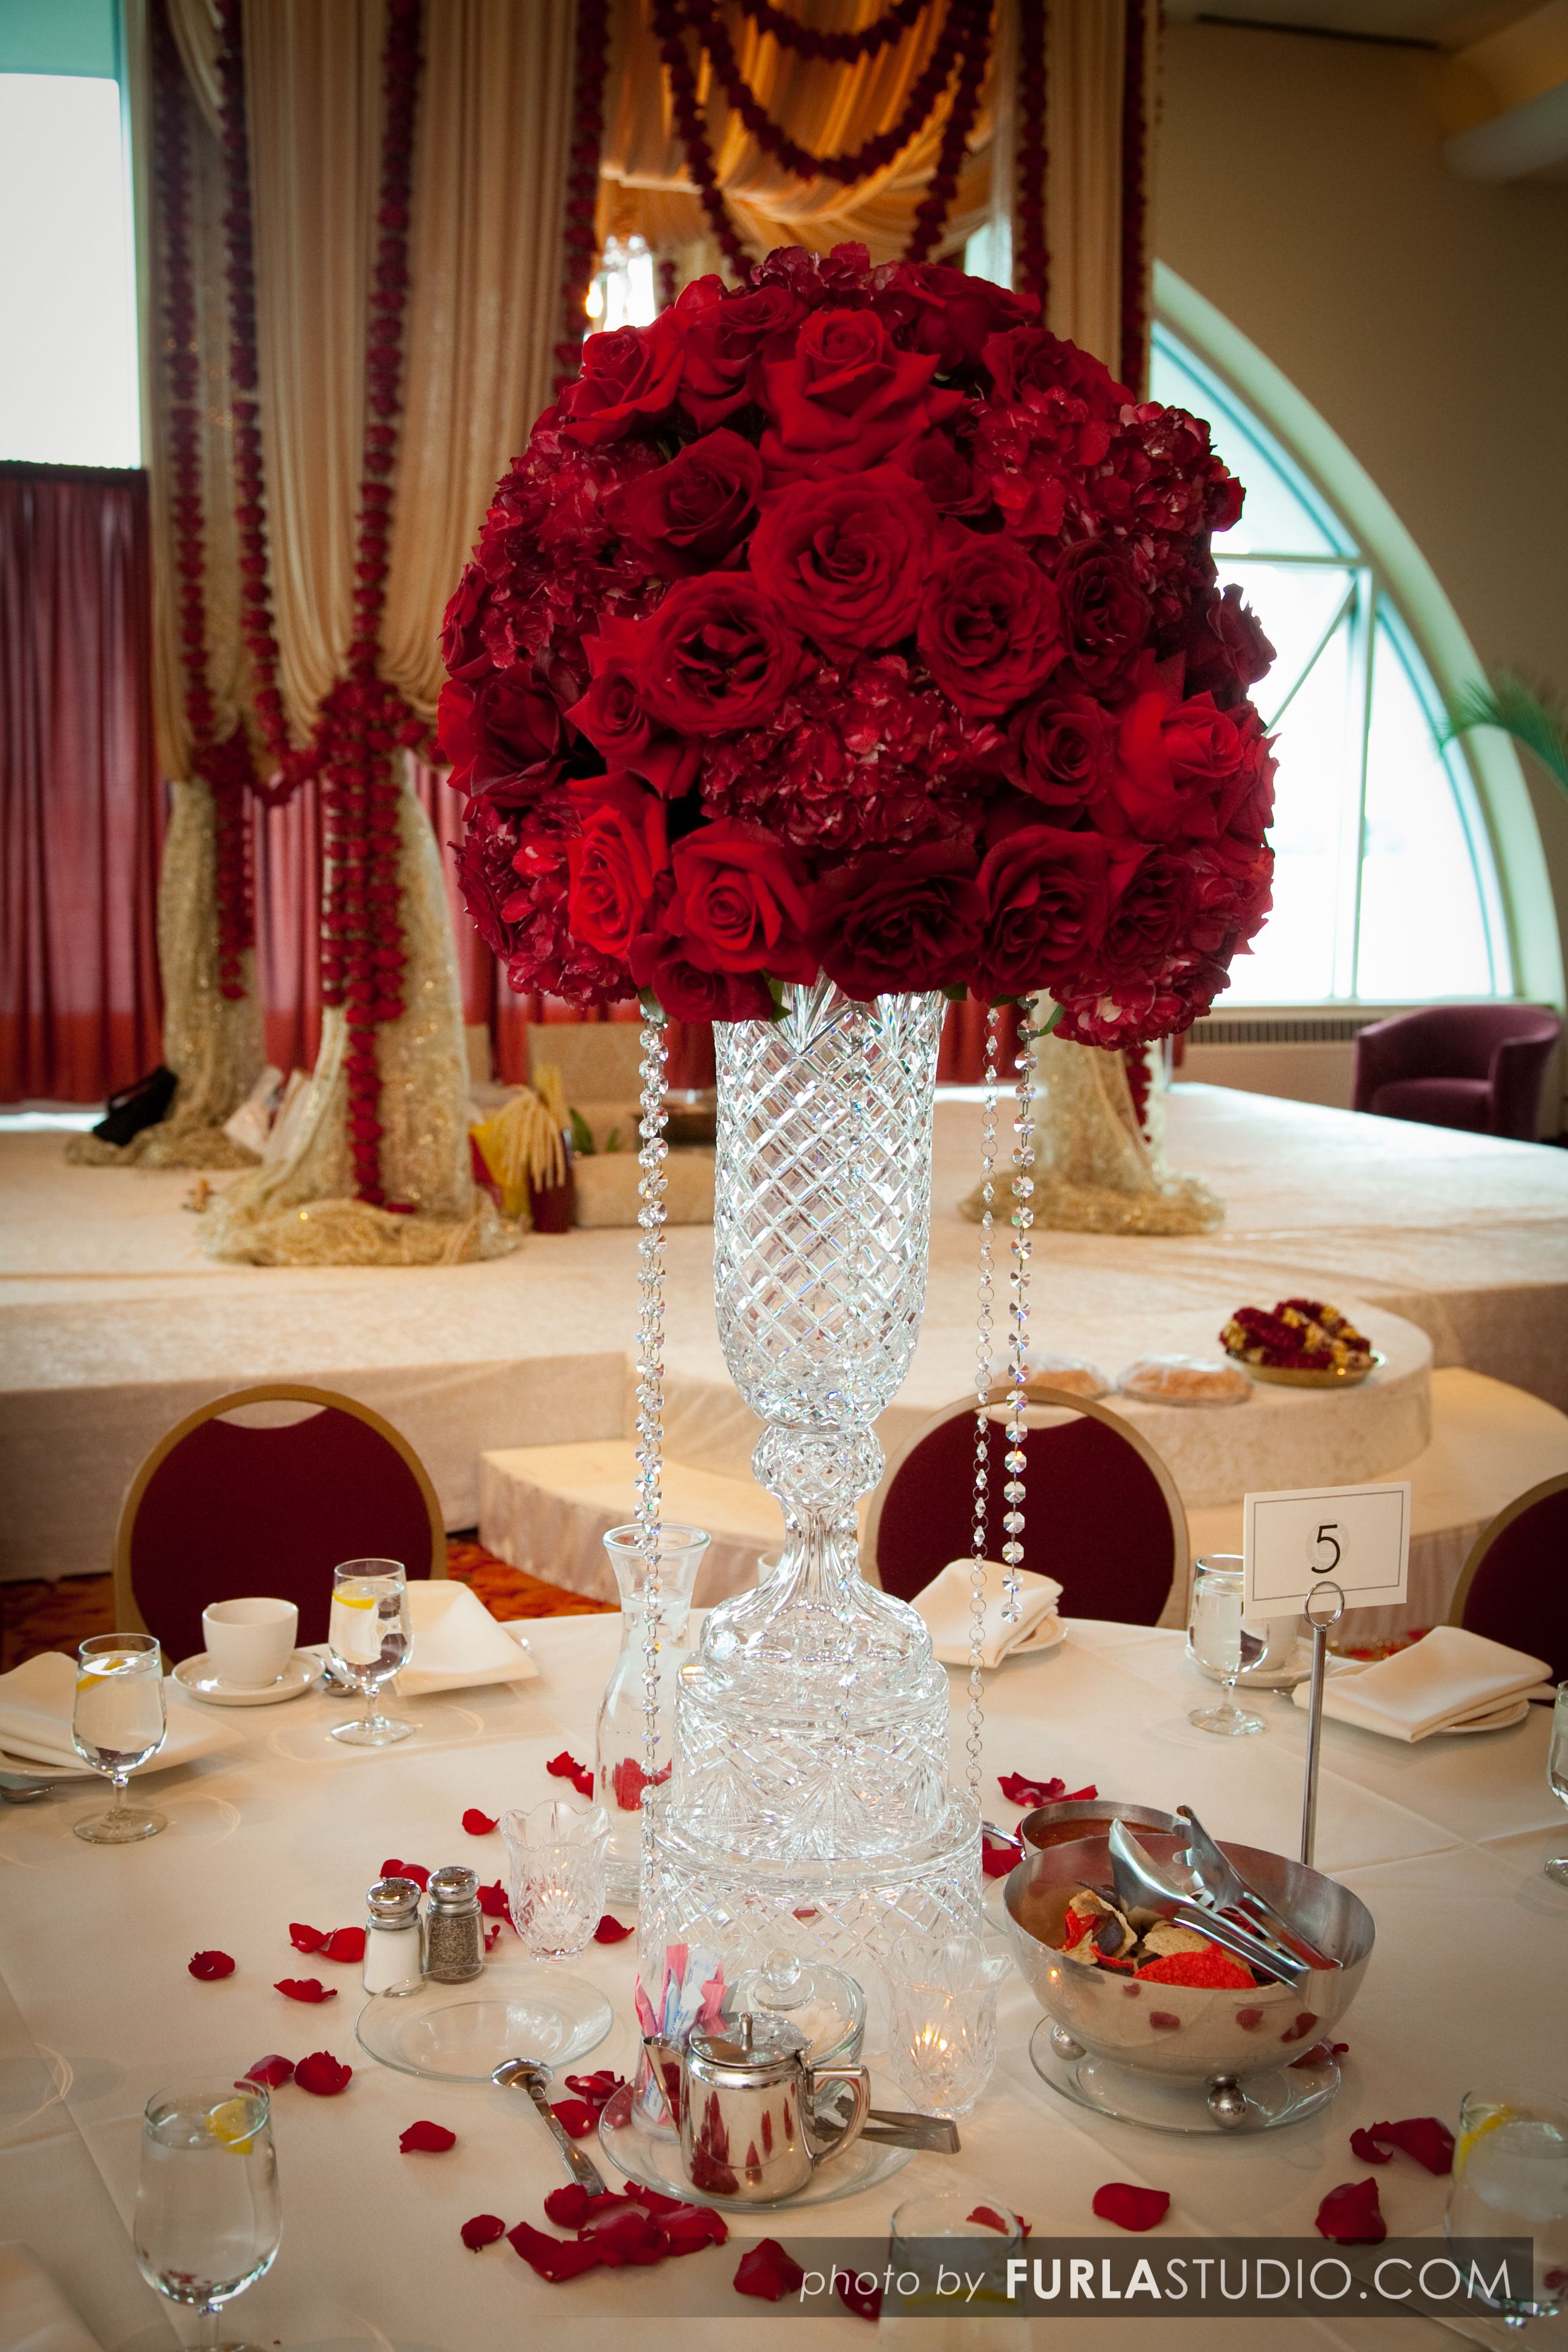 A Very Traditional Red Fl Centerpiece Atop Swarovski Crystal Vase And Dishes Accented With Hanging